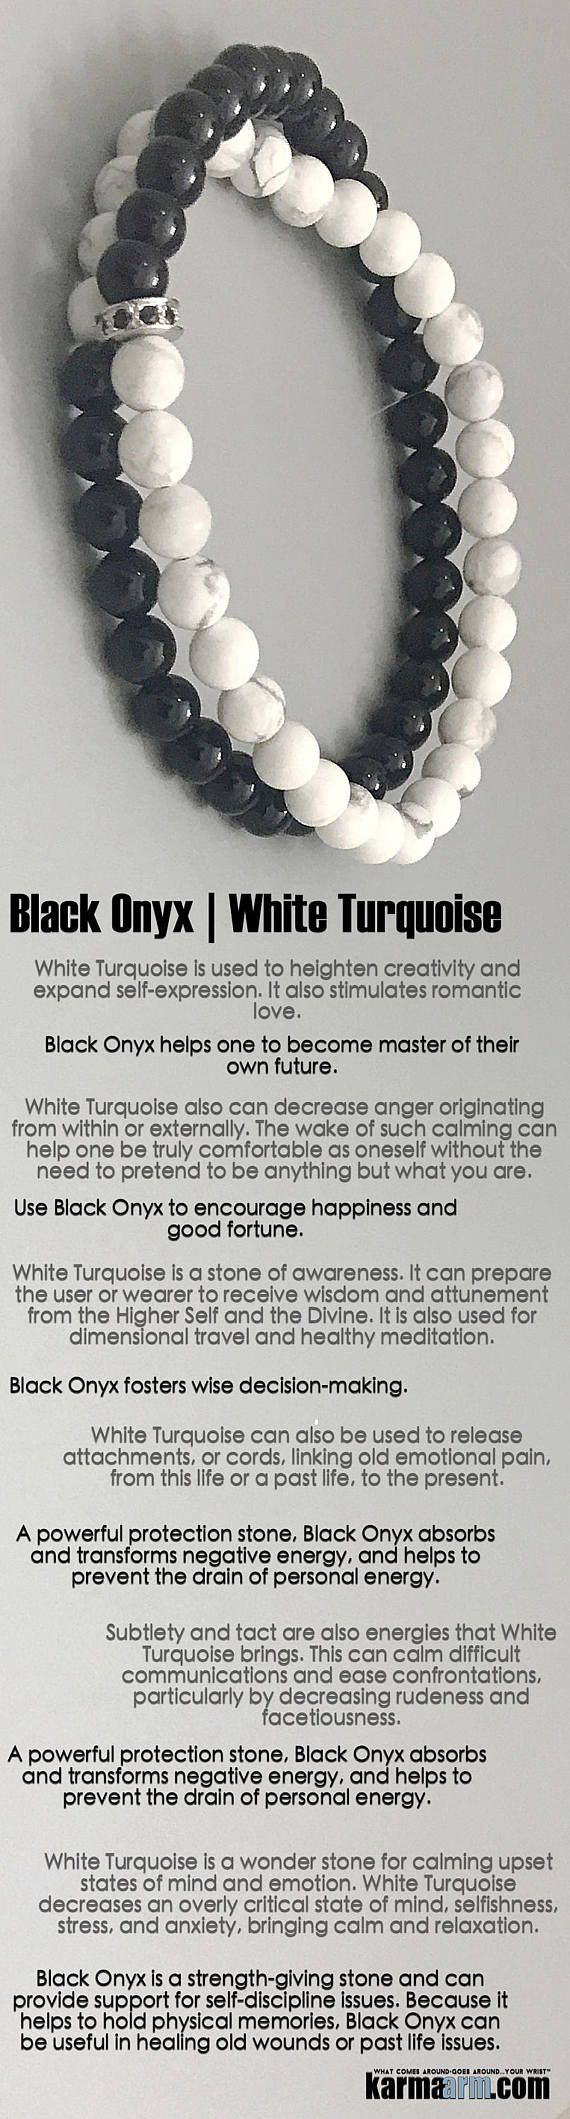 Use Black Onyx to encourage #happiness and good fortune. It helps one to become master of their own future. It is a #strength-giving #stone. #White #Turquoise #Black #Onyx #Pave  #Beaded #Beads #Bijoux #Bracelet #Bracelets #Buddhist #Chakra #Charm #Crystals #Energy #gifts #gratitude #Handmade #Healing #Jewelry #Kundalini #LawOfAttraction #LOA #Love #Mala #Meditation #Mens #prayer #pulseiras #Reiki #Spiritual #Stacks #Stretch #Womens #Yoga #YogaBracelets